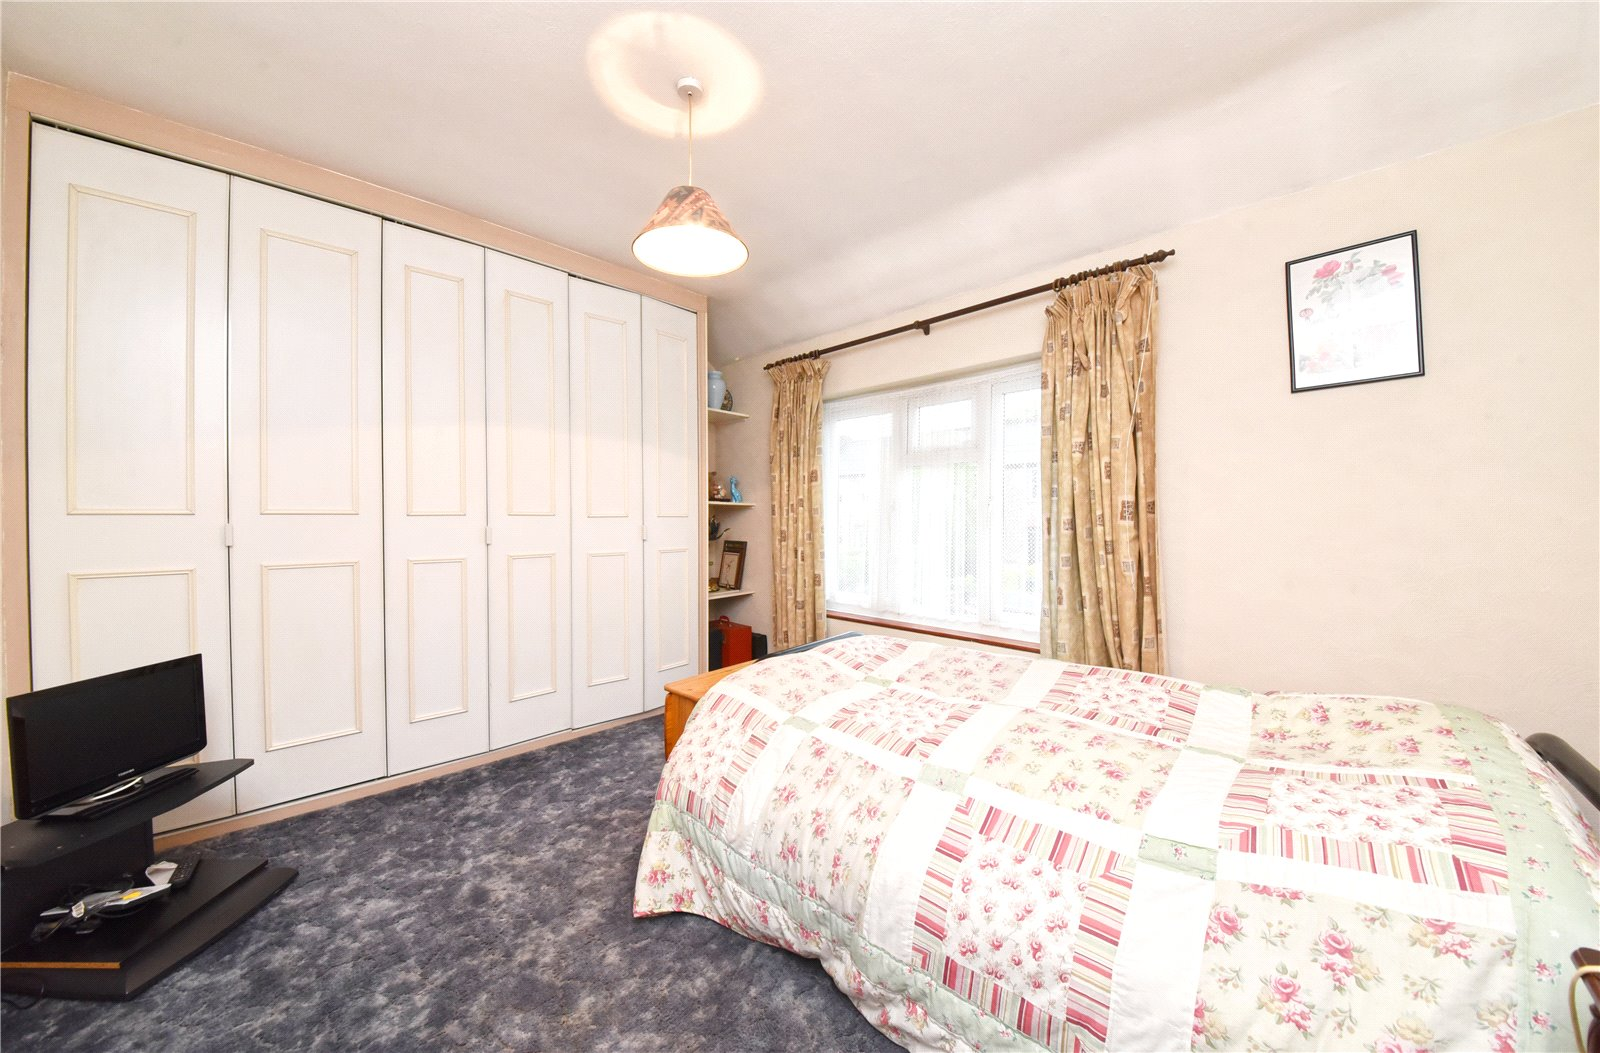 3 bed house for sale in Whetstone, N20 0DG  - Property Image 9